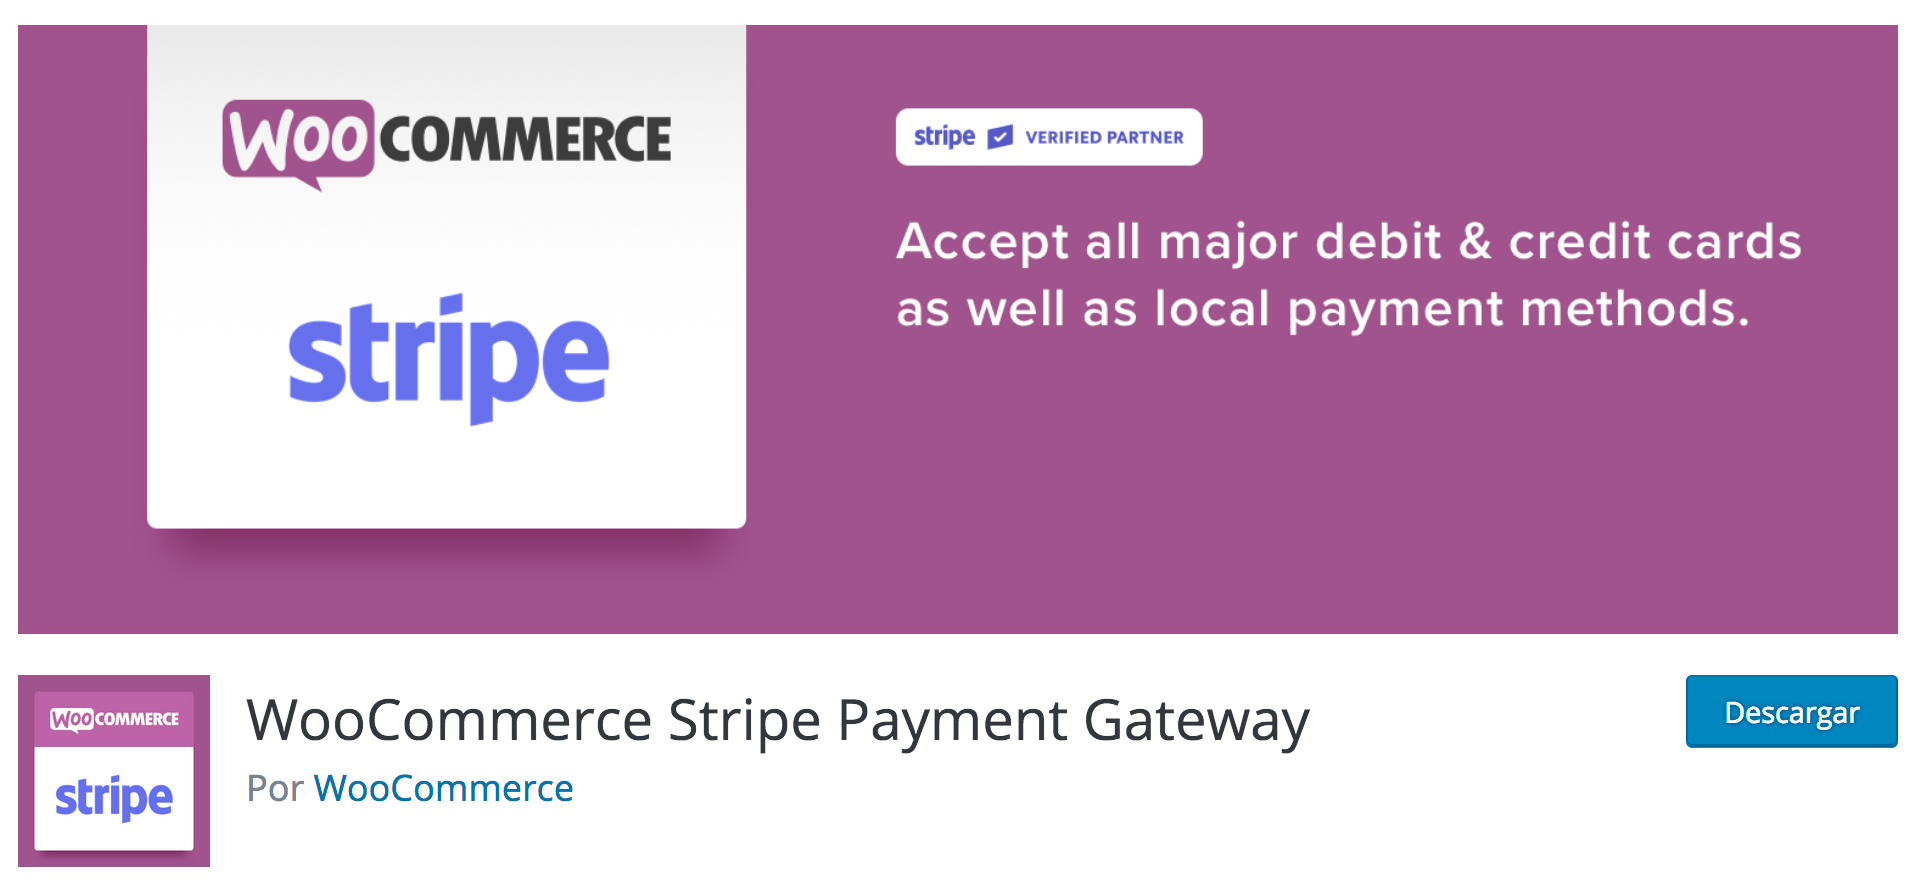 WooCommerce Stripe Payment Gateway